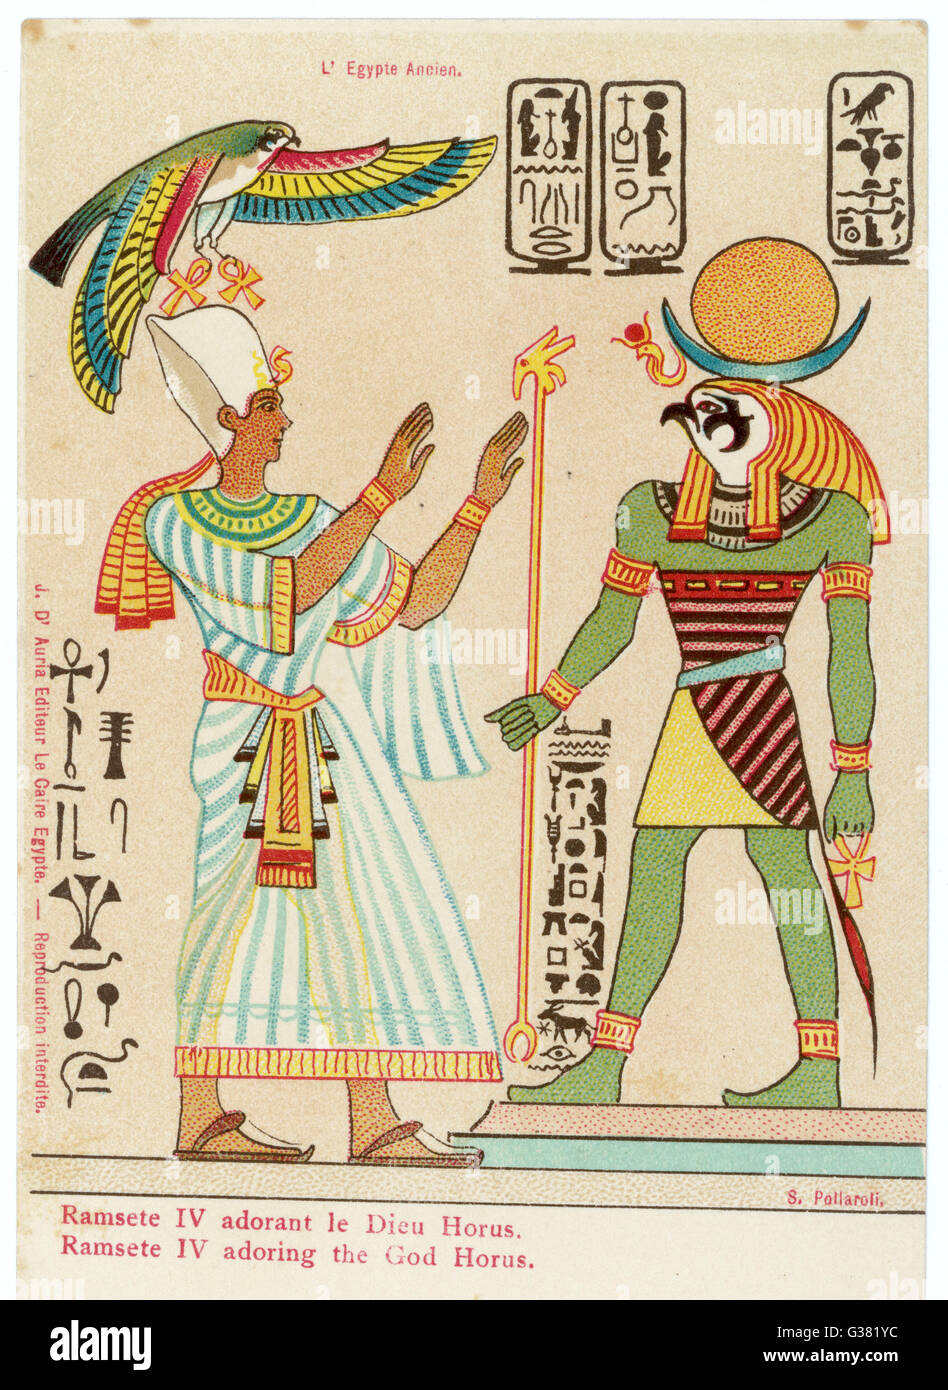 worshipped by the Pharaoh  RAMSES IV         Date: - Stock Image